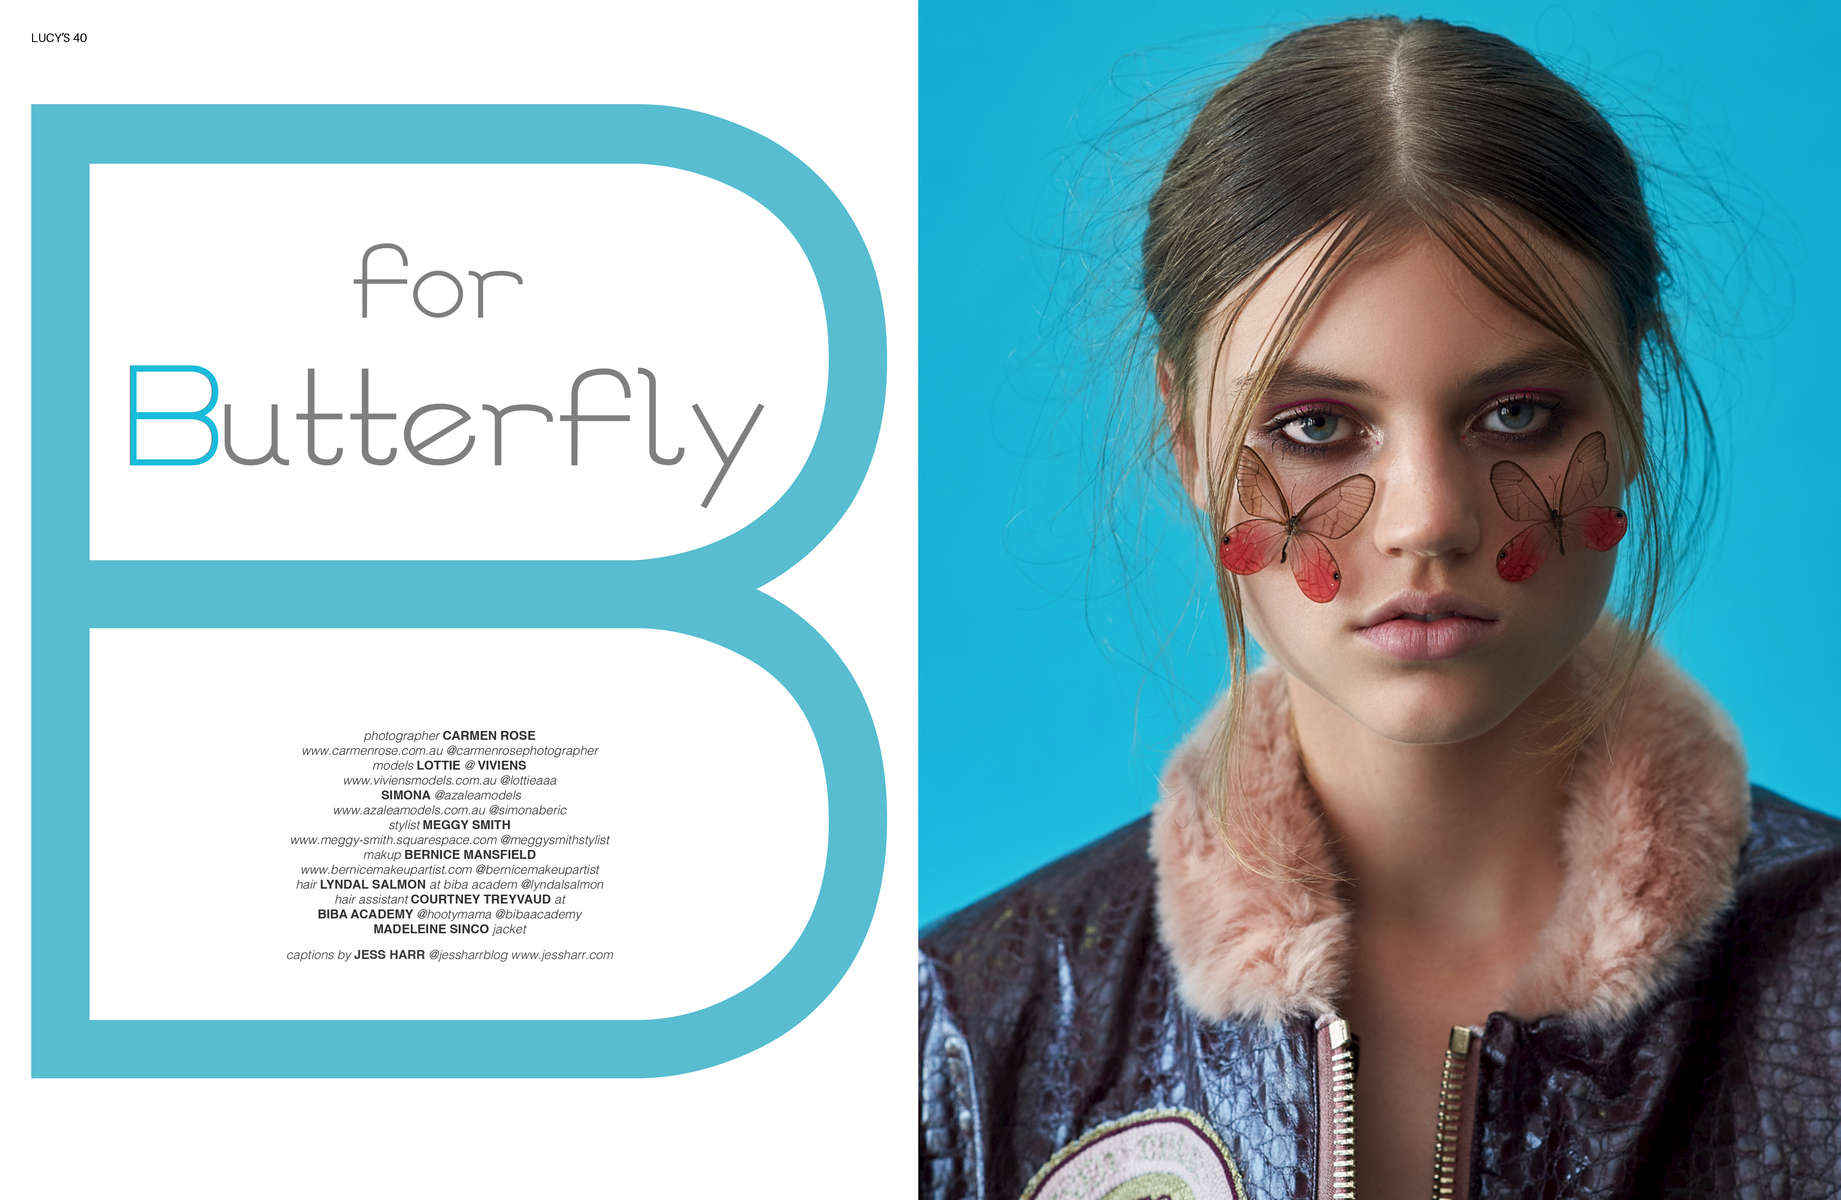 B for Butterfly shoot for lucy's by carmen rose.